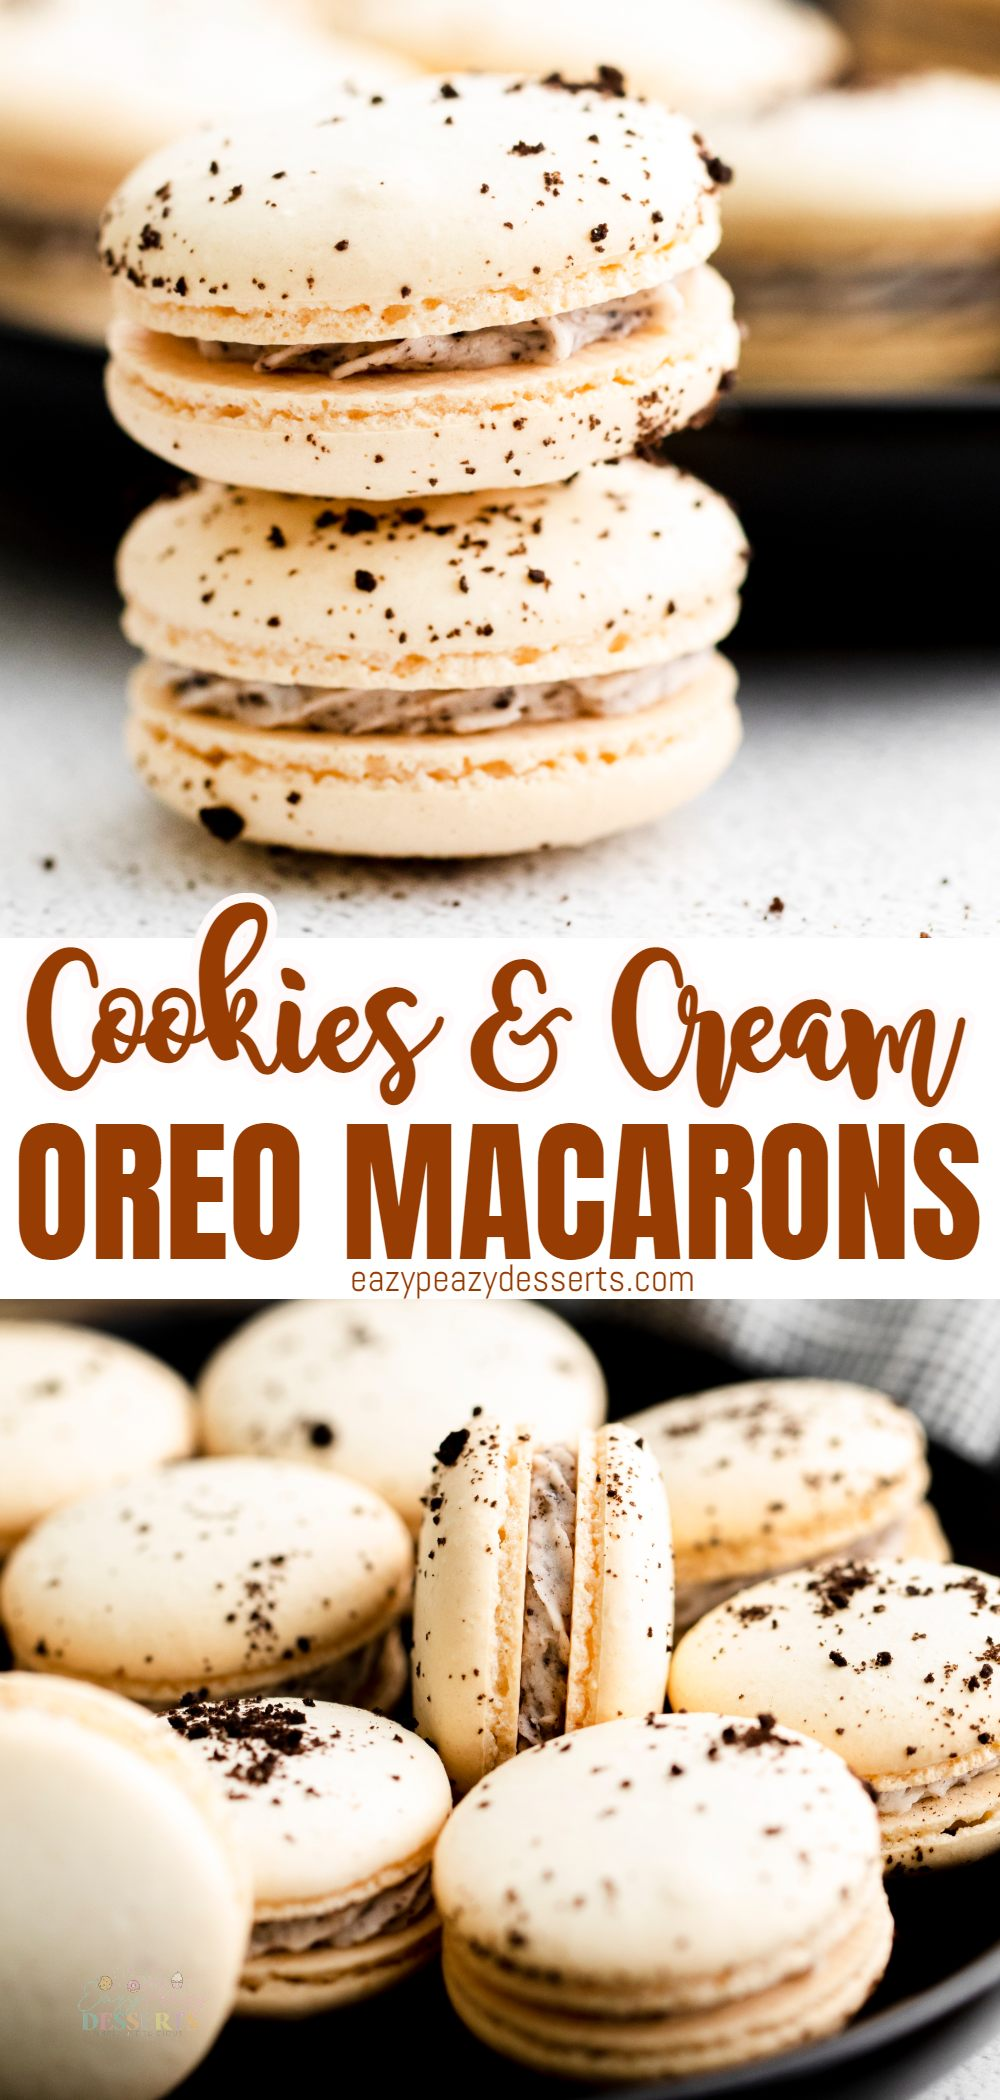 Looking for a special dessert idea? These delicate French Oreo macarons are going to be your new favorite way to enjoy an Oreo cookie! via @eazypeazydesserts